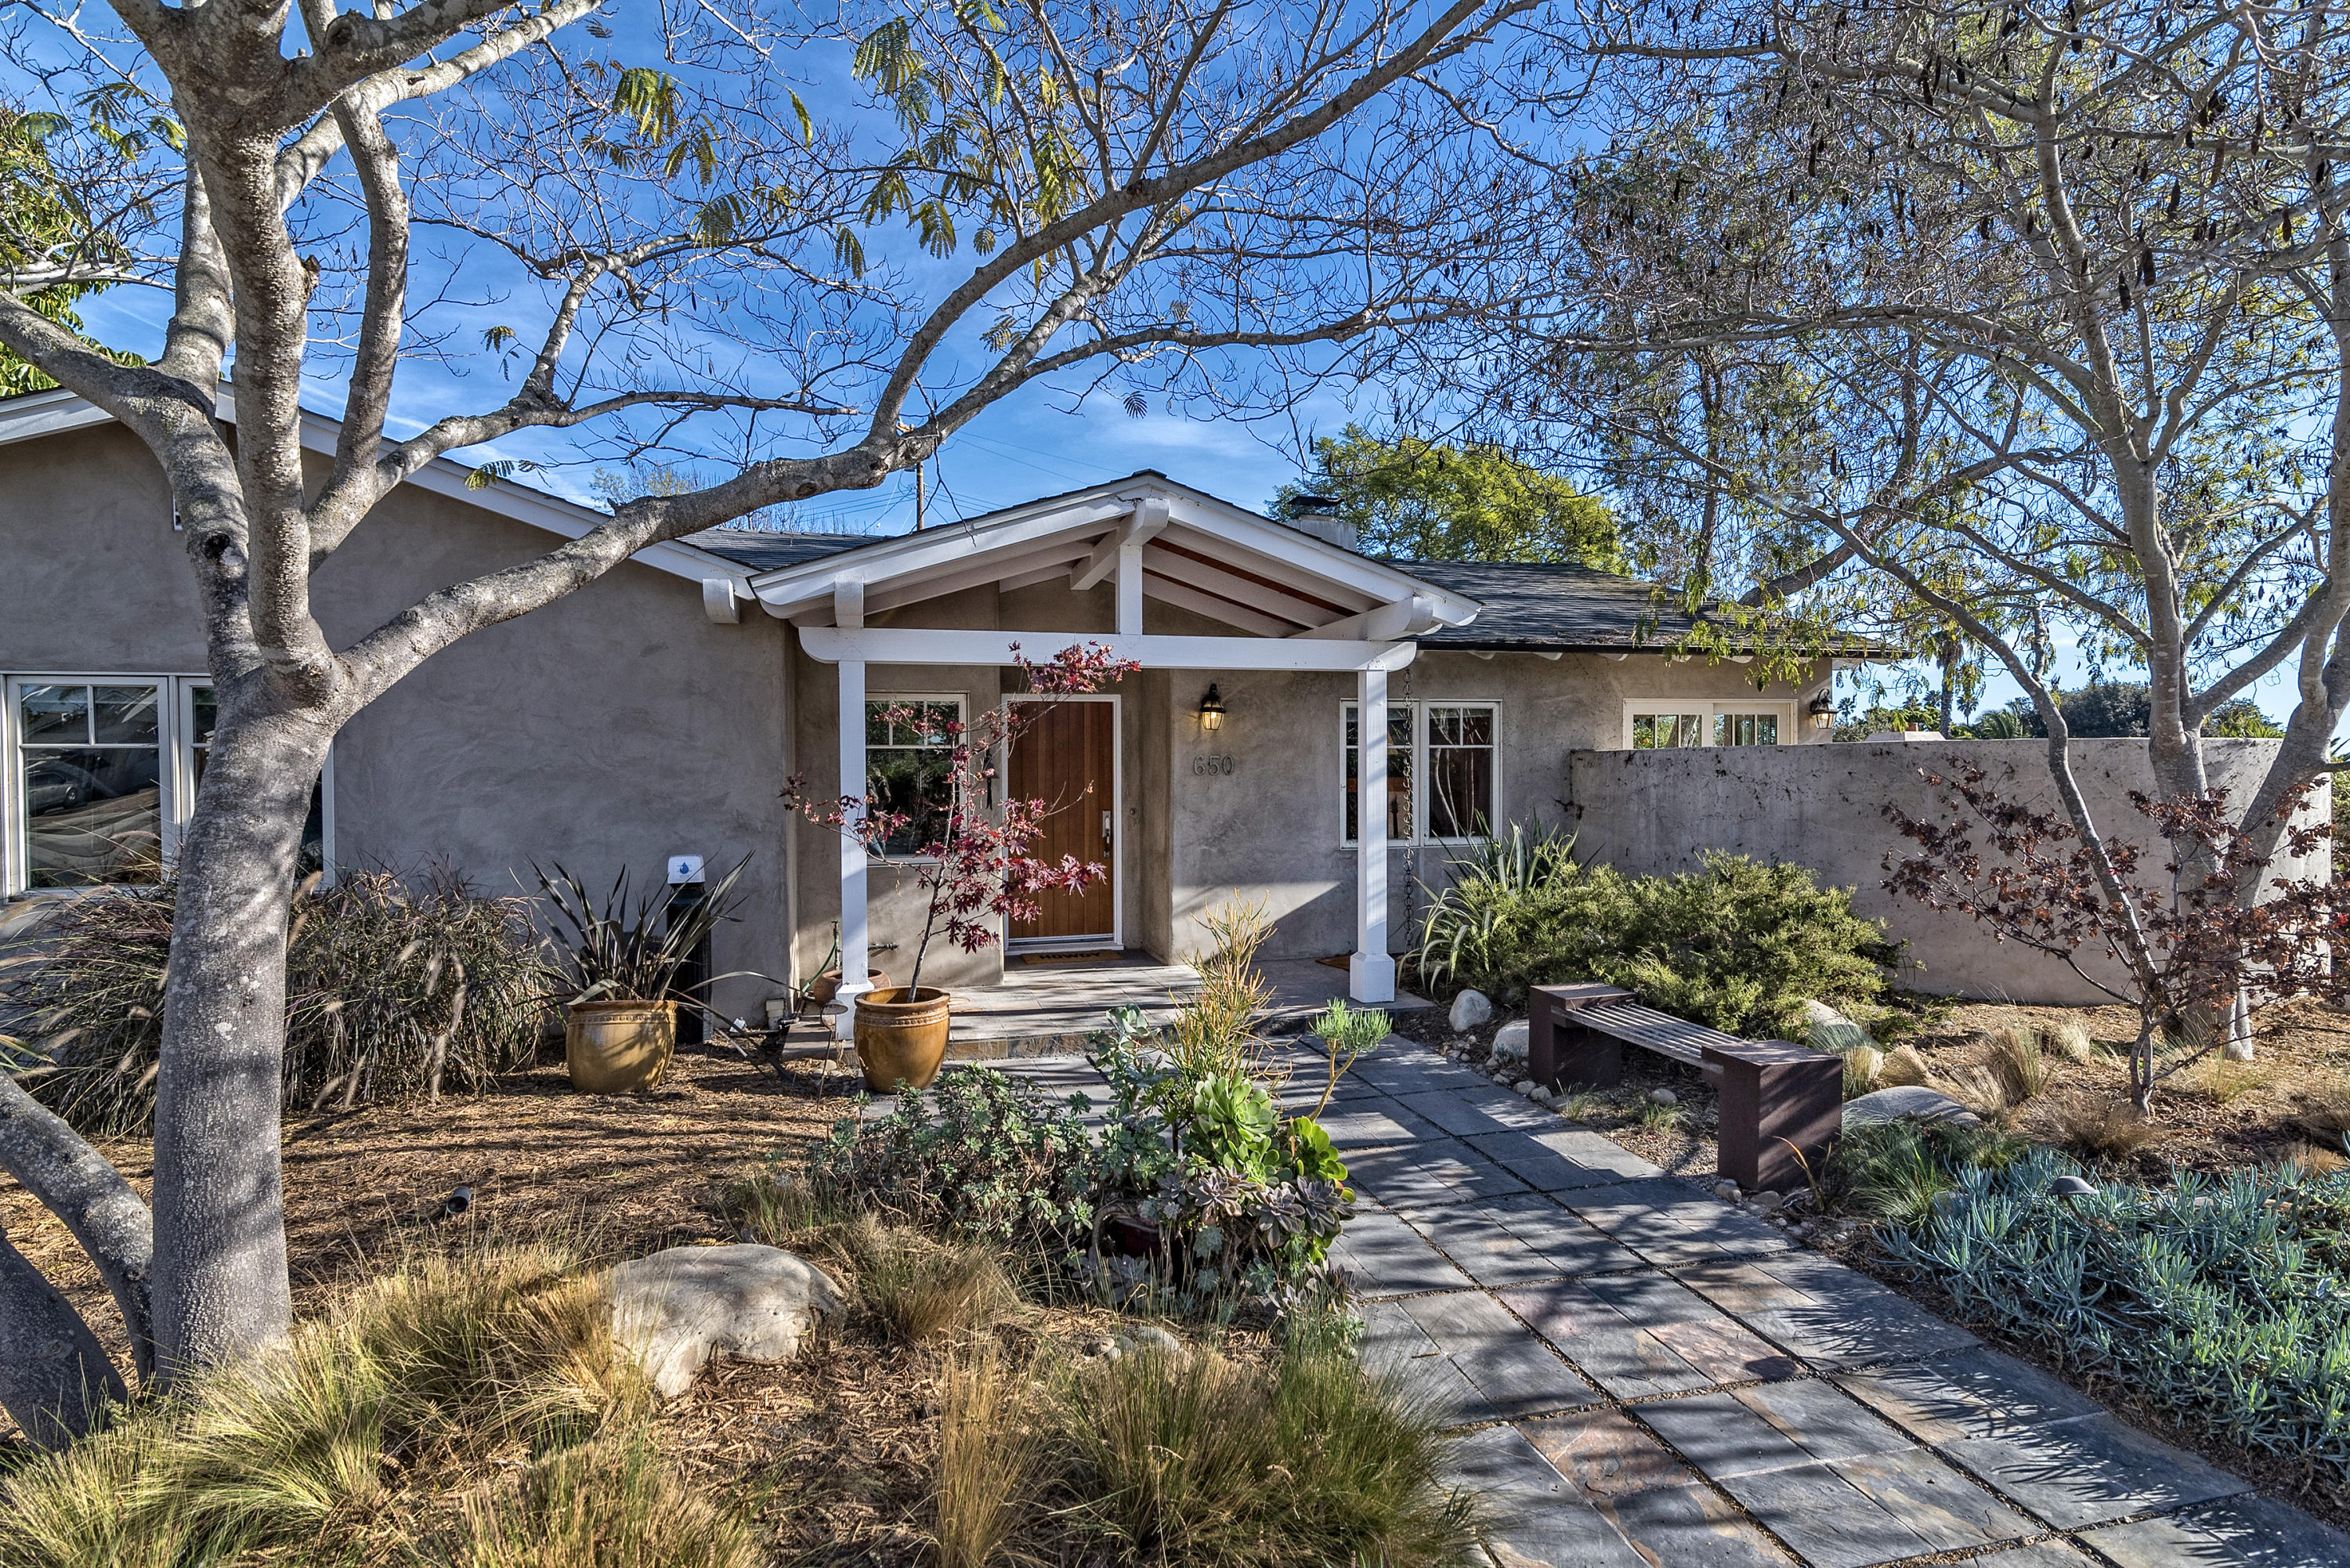 Property photo for 650 Juanita Ave Santa Barbara, California 93109 - 18-420